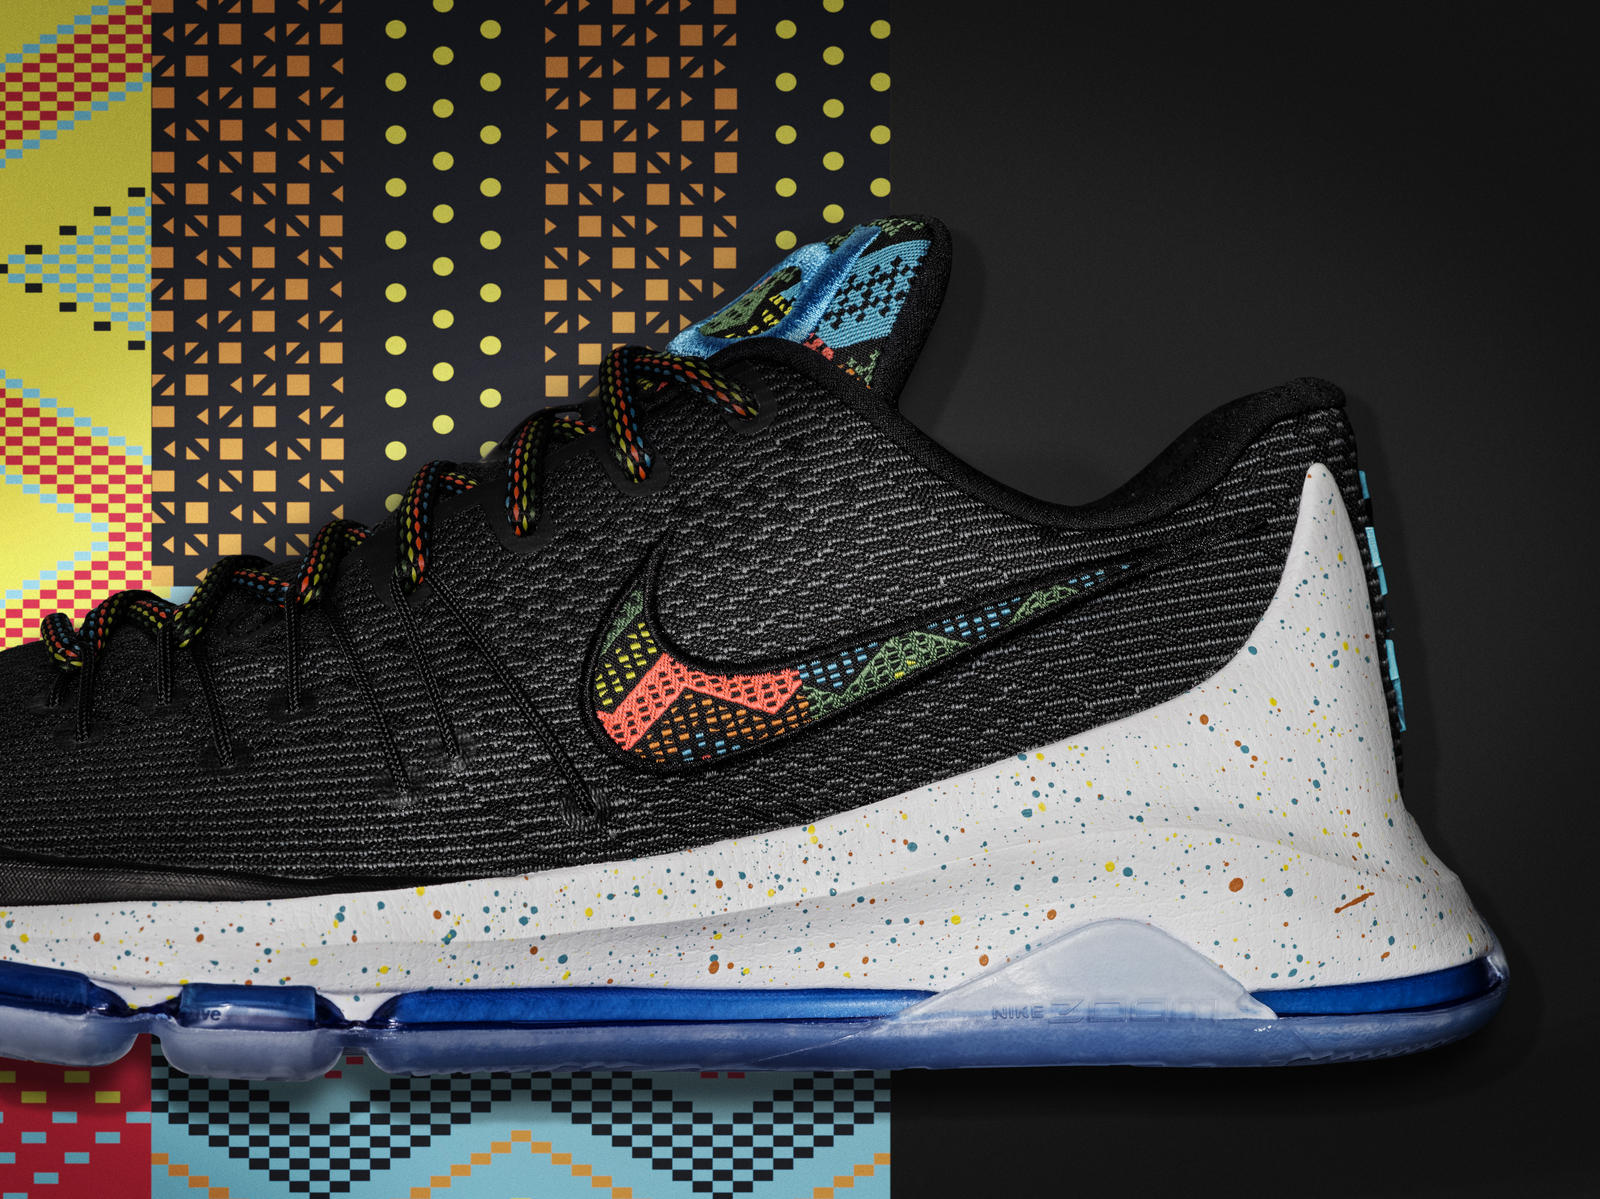 Cheap Nike Kevin Durant KD 5 Cheap sale BHM Black History Month